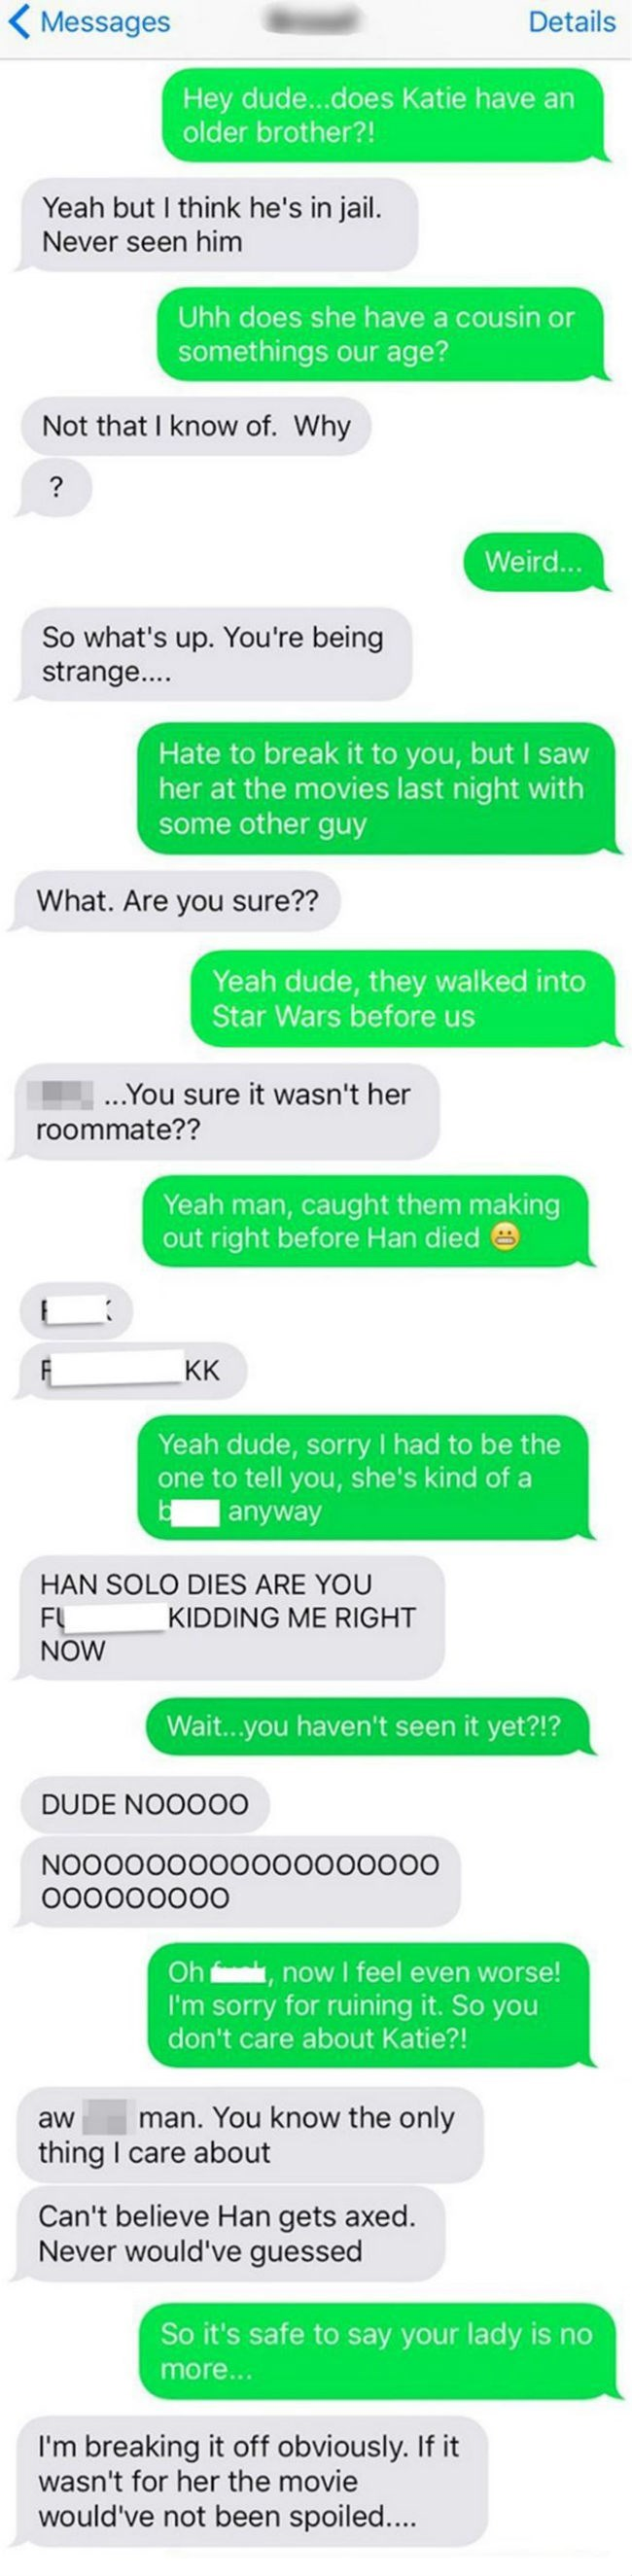 funny dating fail guy finds out girlfriend is cheating and gets star wars spoiled for him